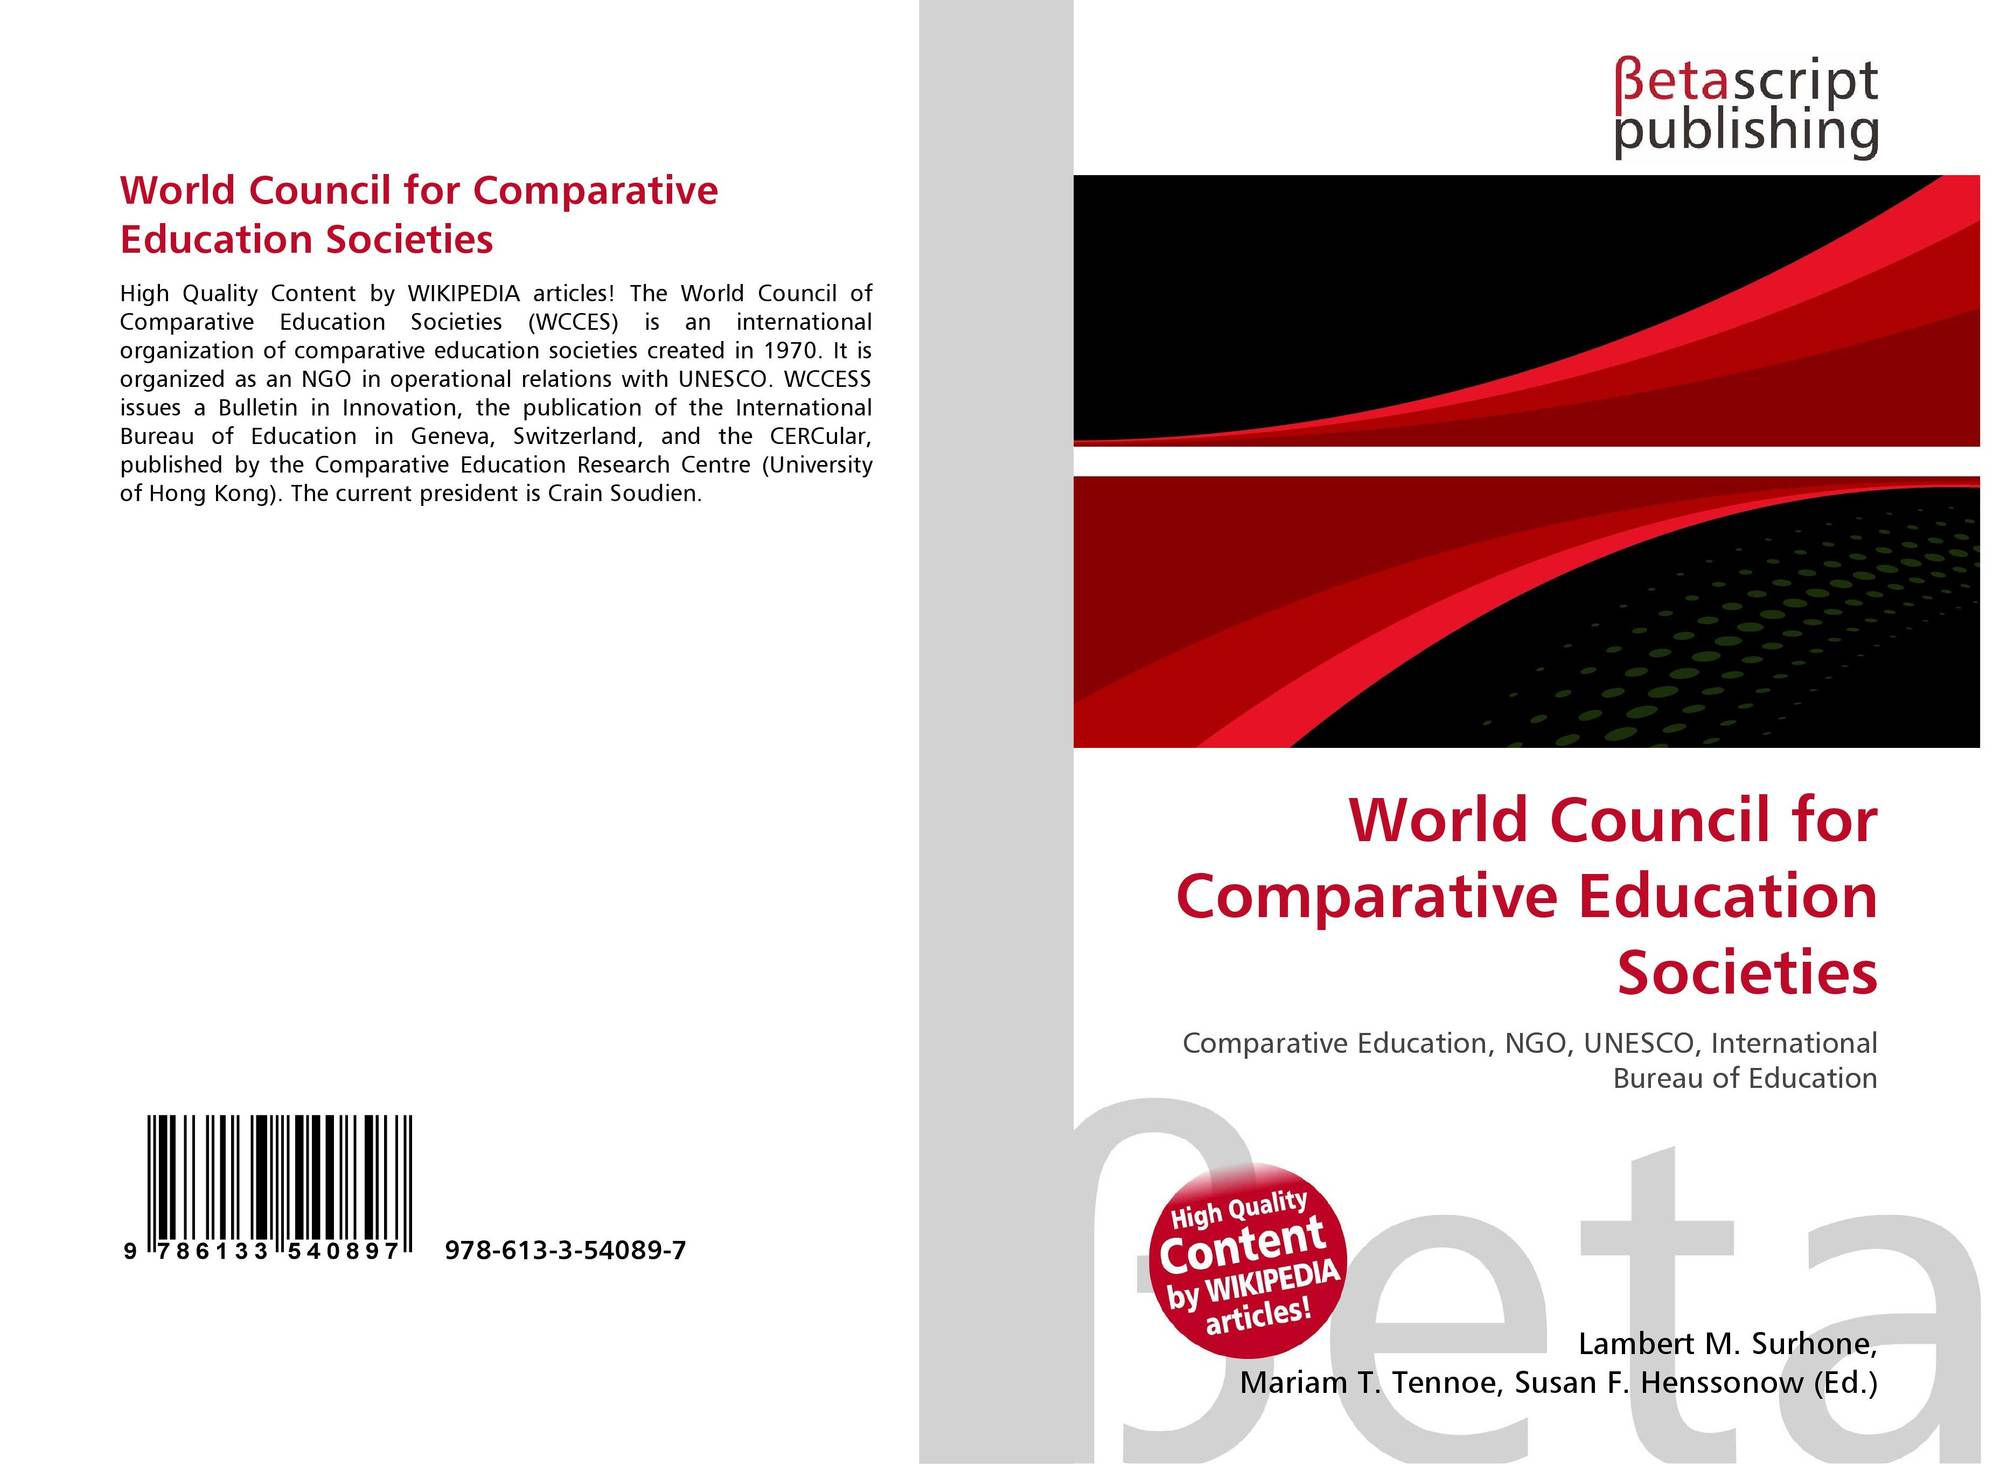 World Council for Comparative Education Societies, 978-613-3-54089-7 on